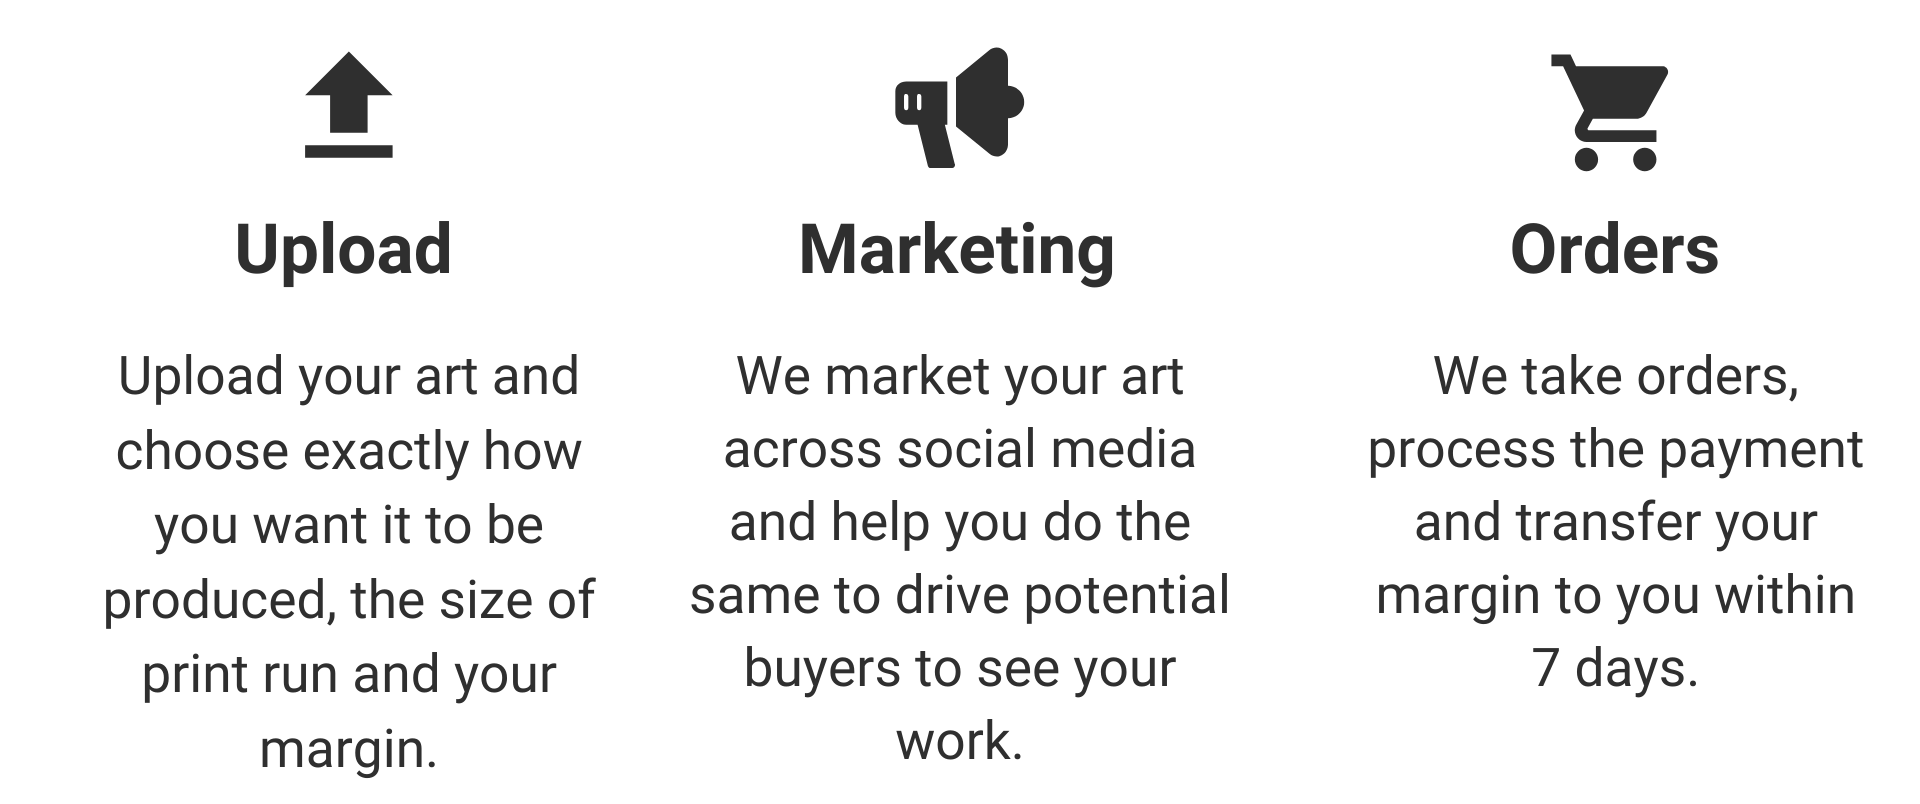 Upload	Marketing	Orders Upload your art and choose exactly how you want it to be produced, the size of print run and your margin. 	We market your art across social media and help you do the same to drive potential buyers to see your work. 	We take orders, process the payment and transfer your margin to you within 7 days.